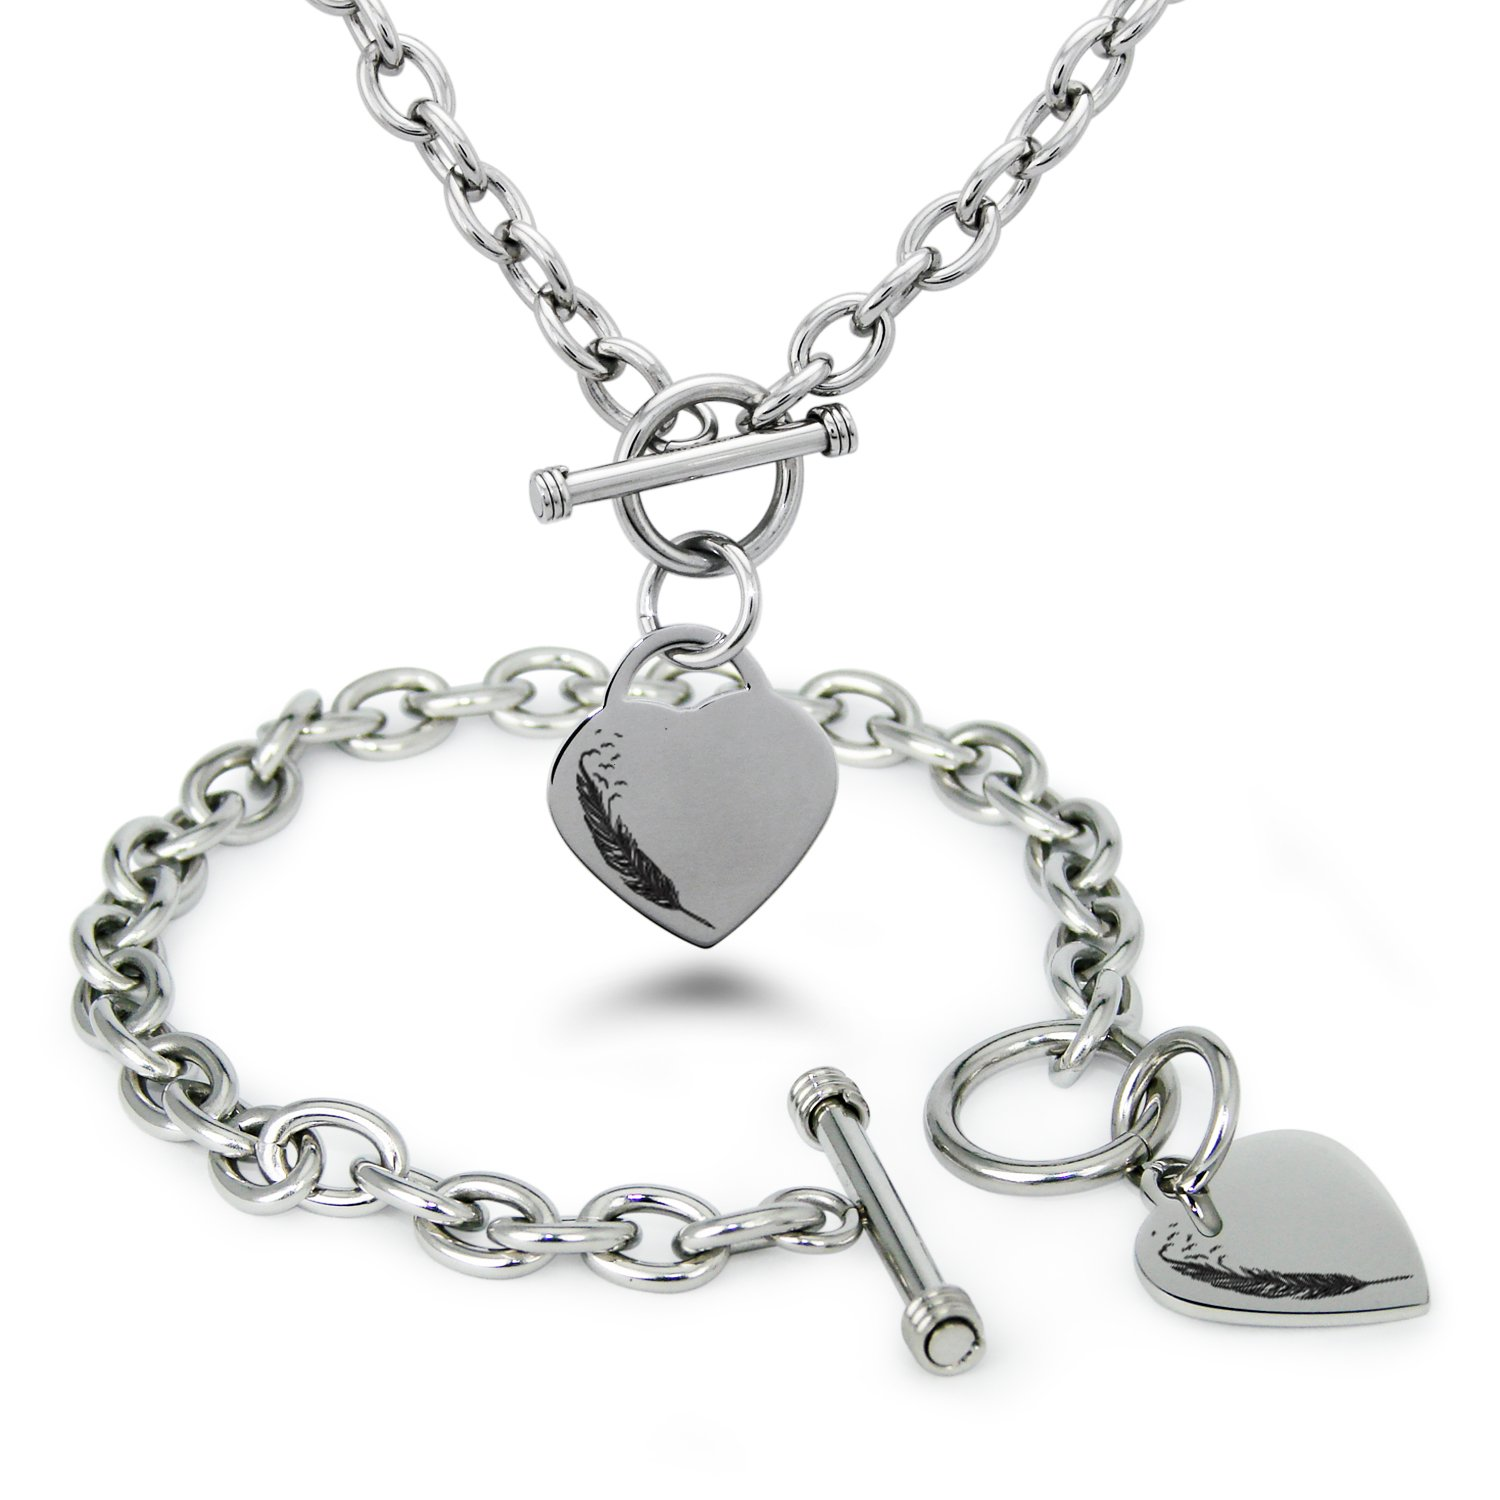 Stainless Steel Feather Birds Heart Charm, Bracelet and Necklace Set